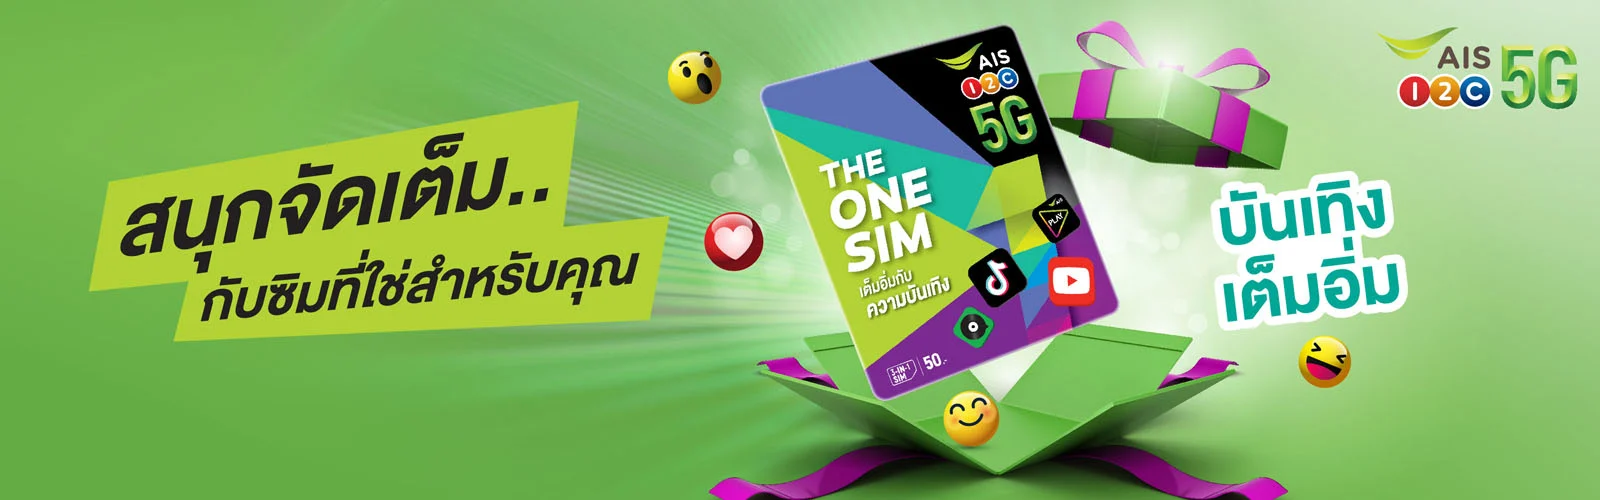 banner-the-one-sim